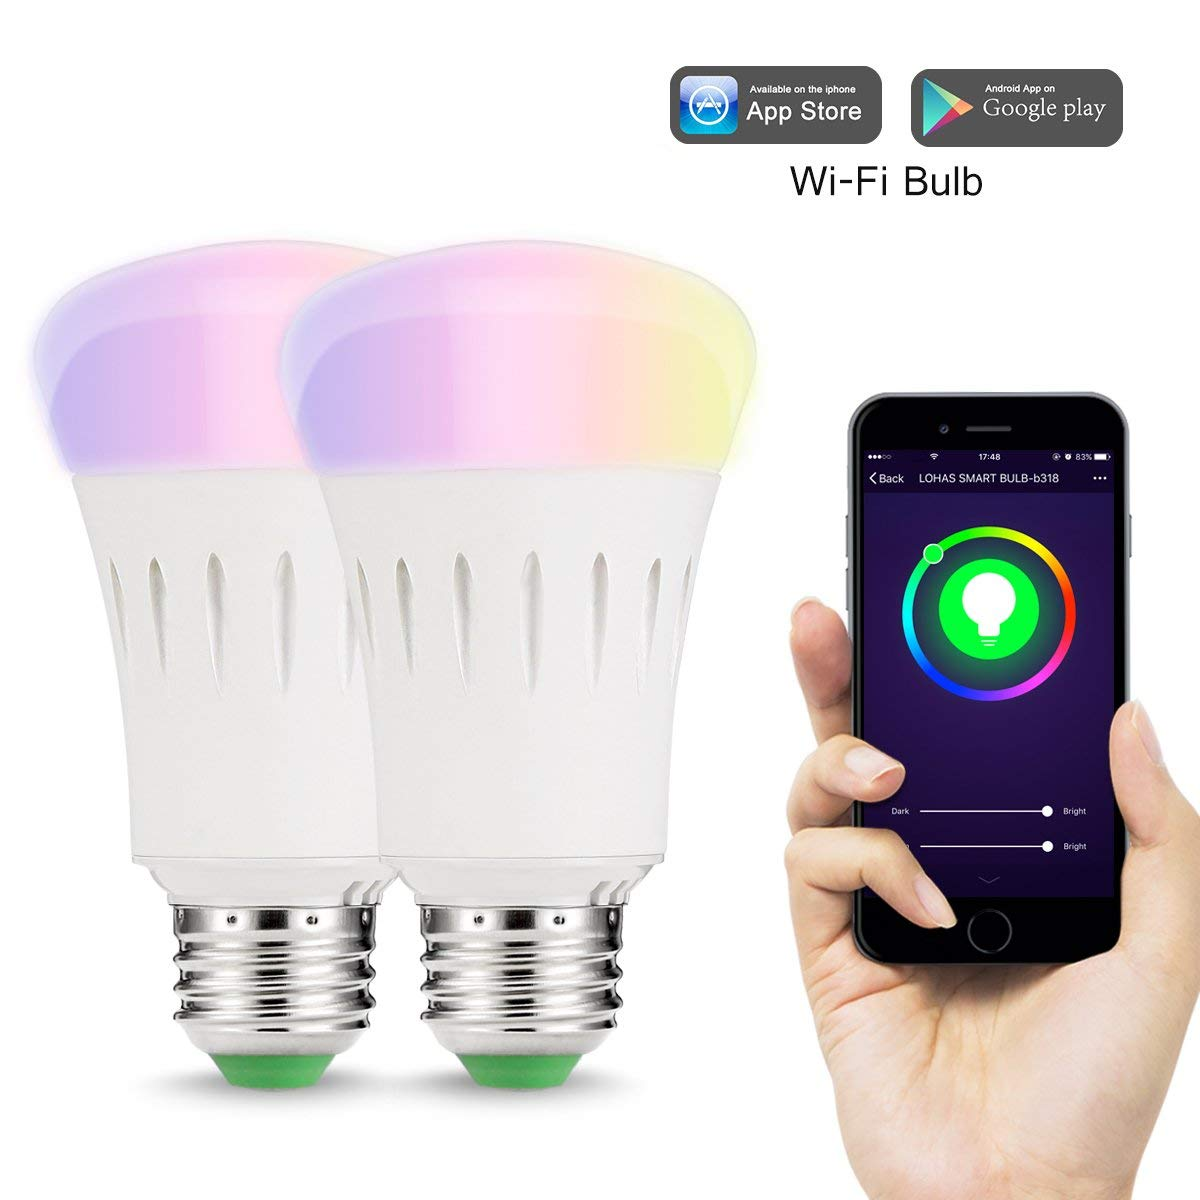 Wifi Smart LED Light Bulb E27 RGB Multi Color Dimmable Daylight Night Timer App Control Compatible with Alexa,Google Home-2PACK защитная пленка deppa для lg k10 глянцевая